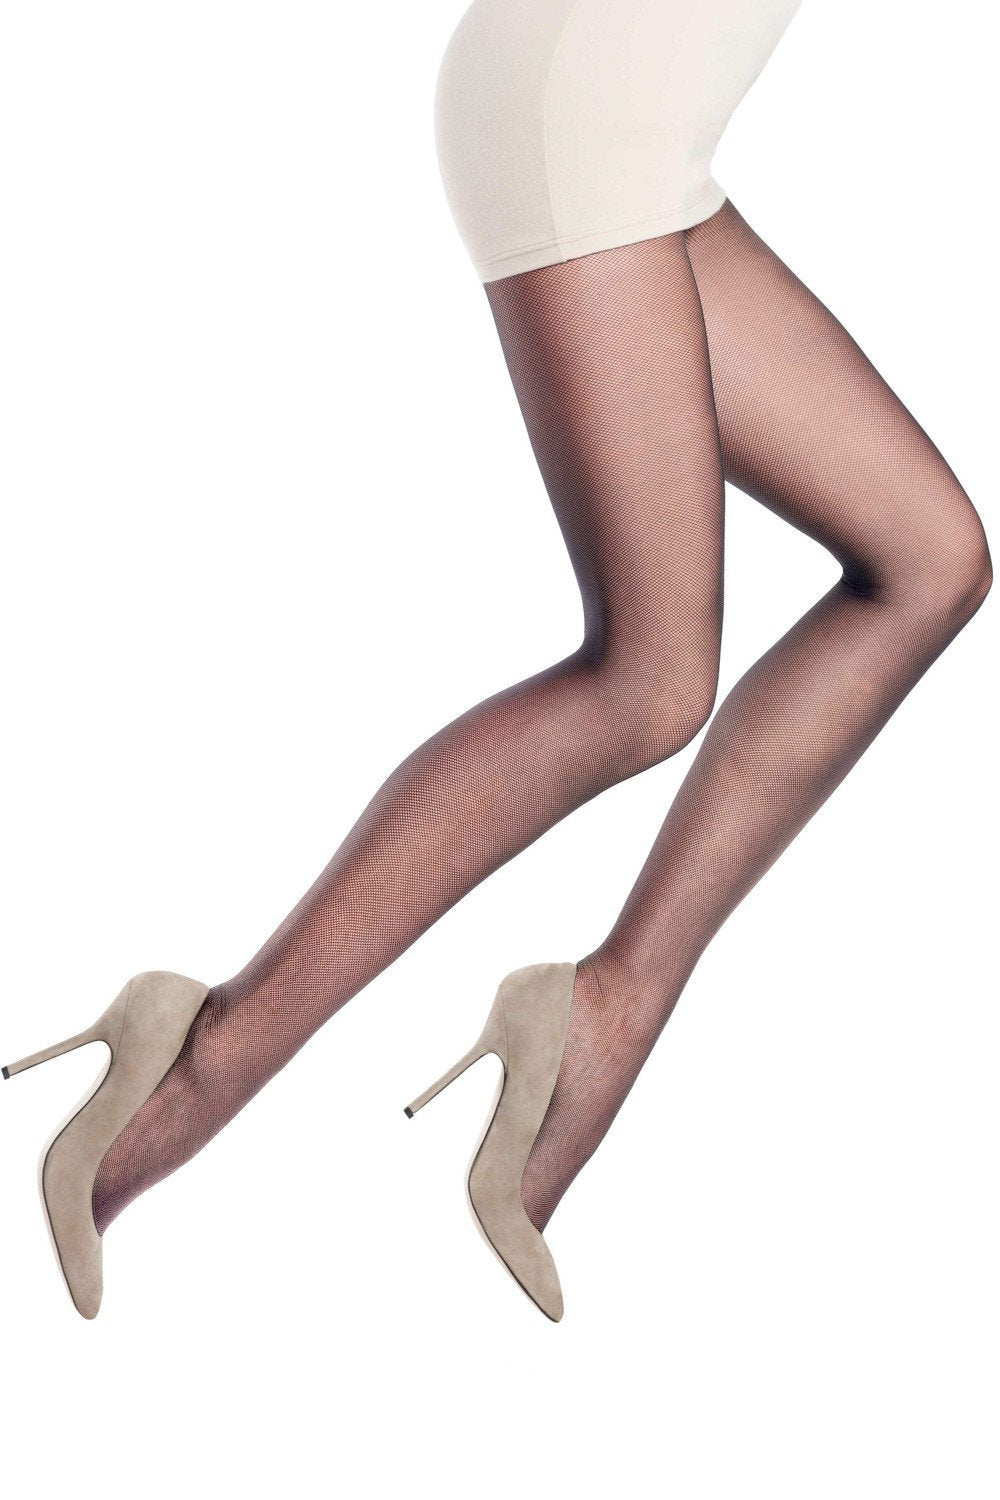 Oroblu Tulle 20 Tights - The Hosiery Box